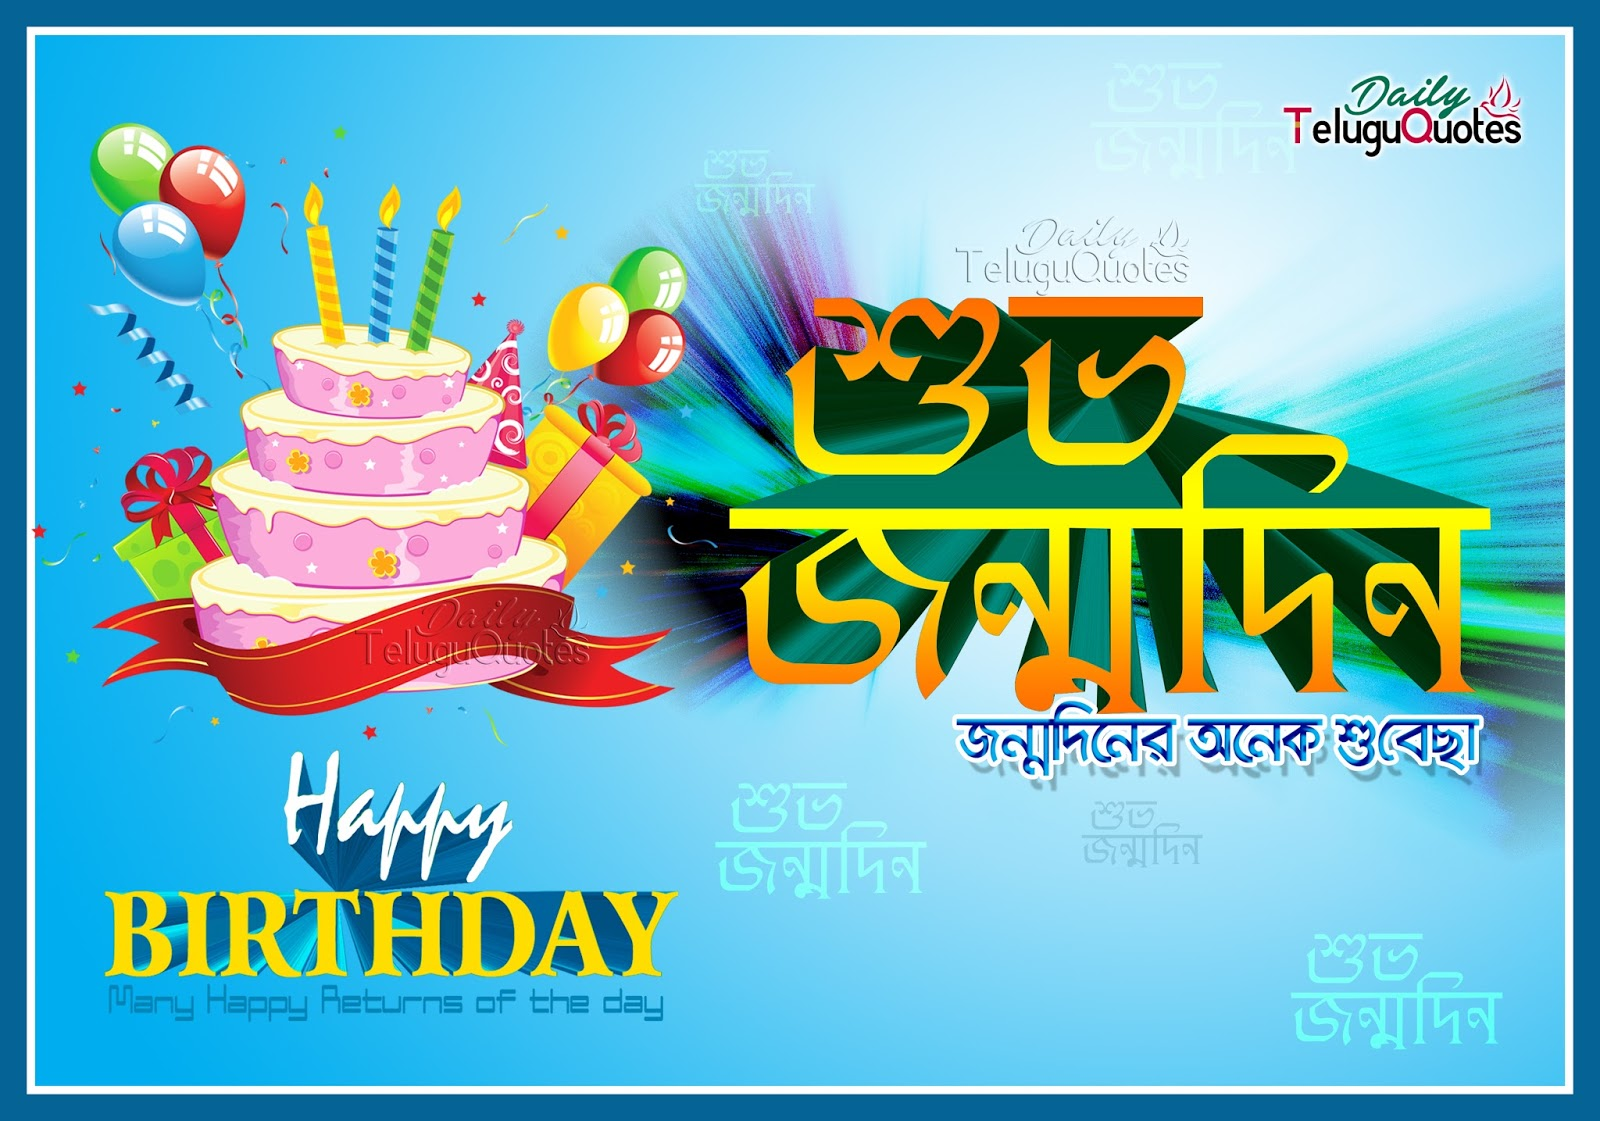 Happy Birthday Greetings in Bengali hd images